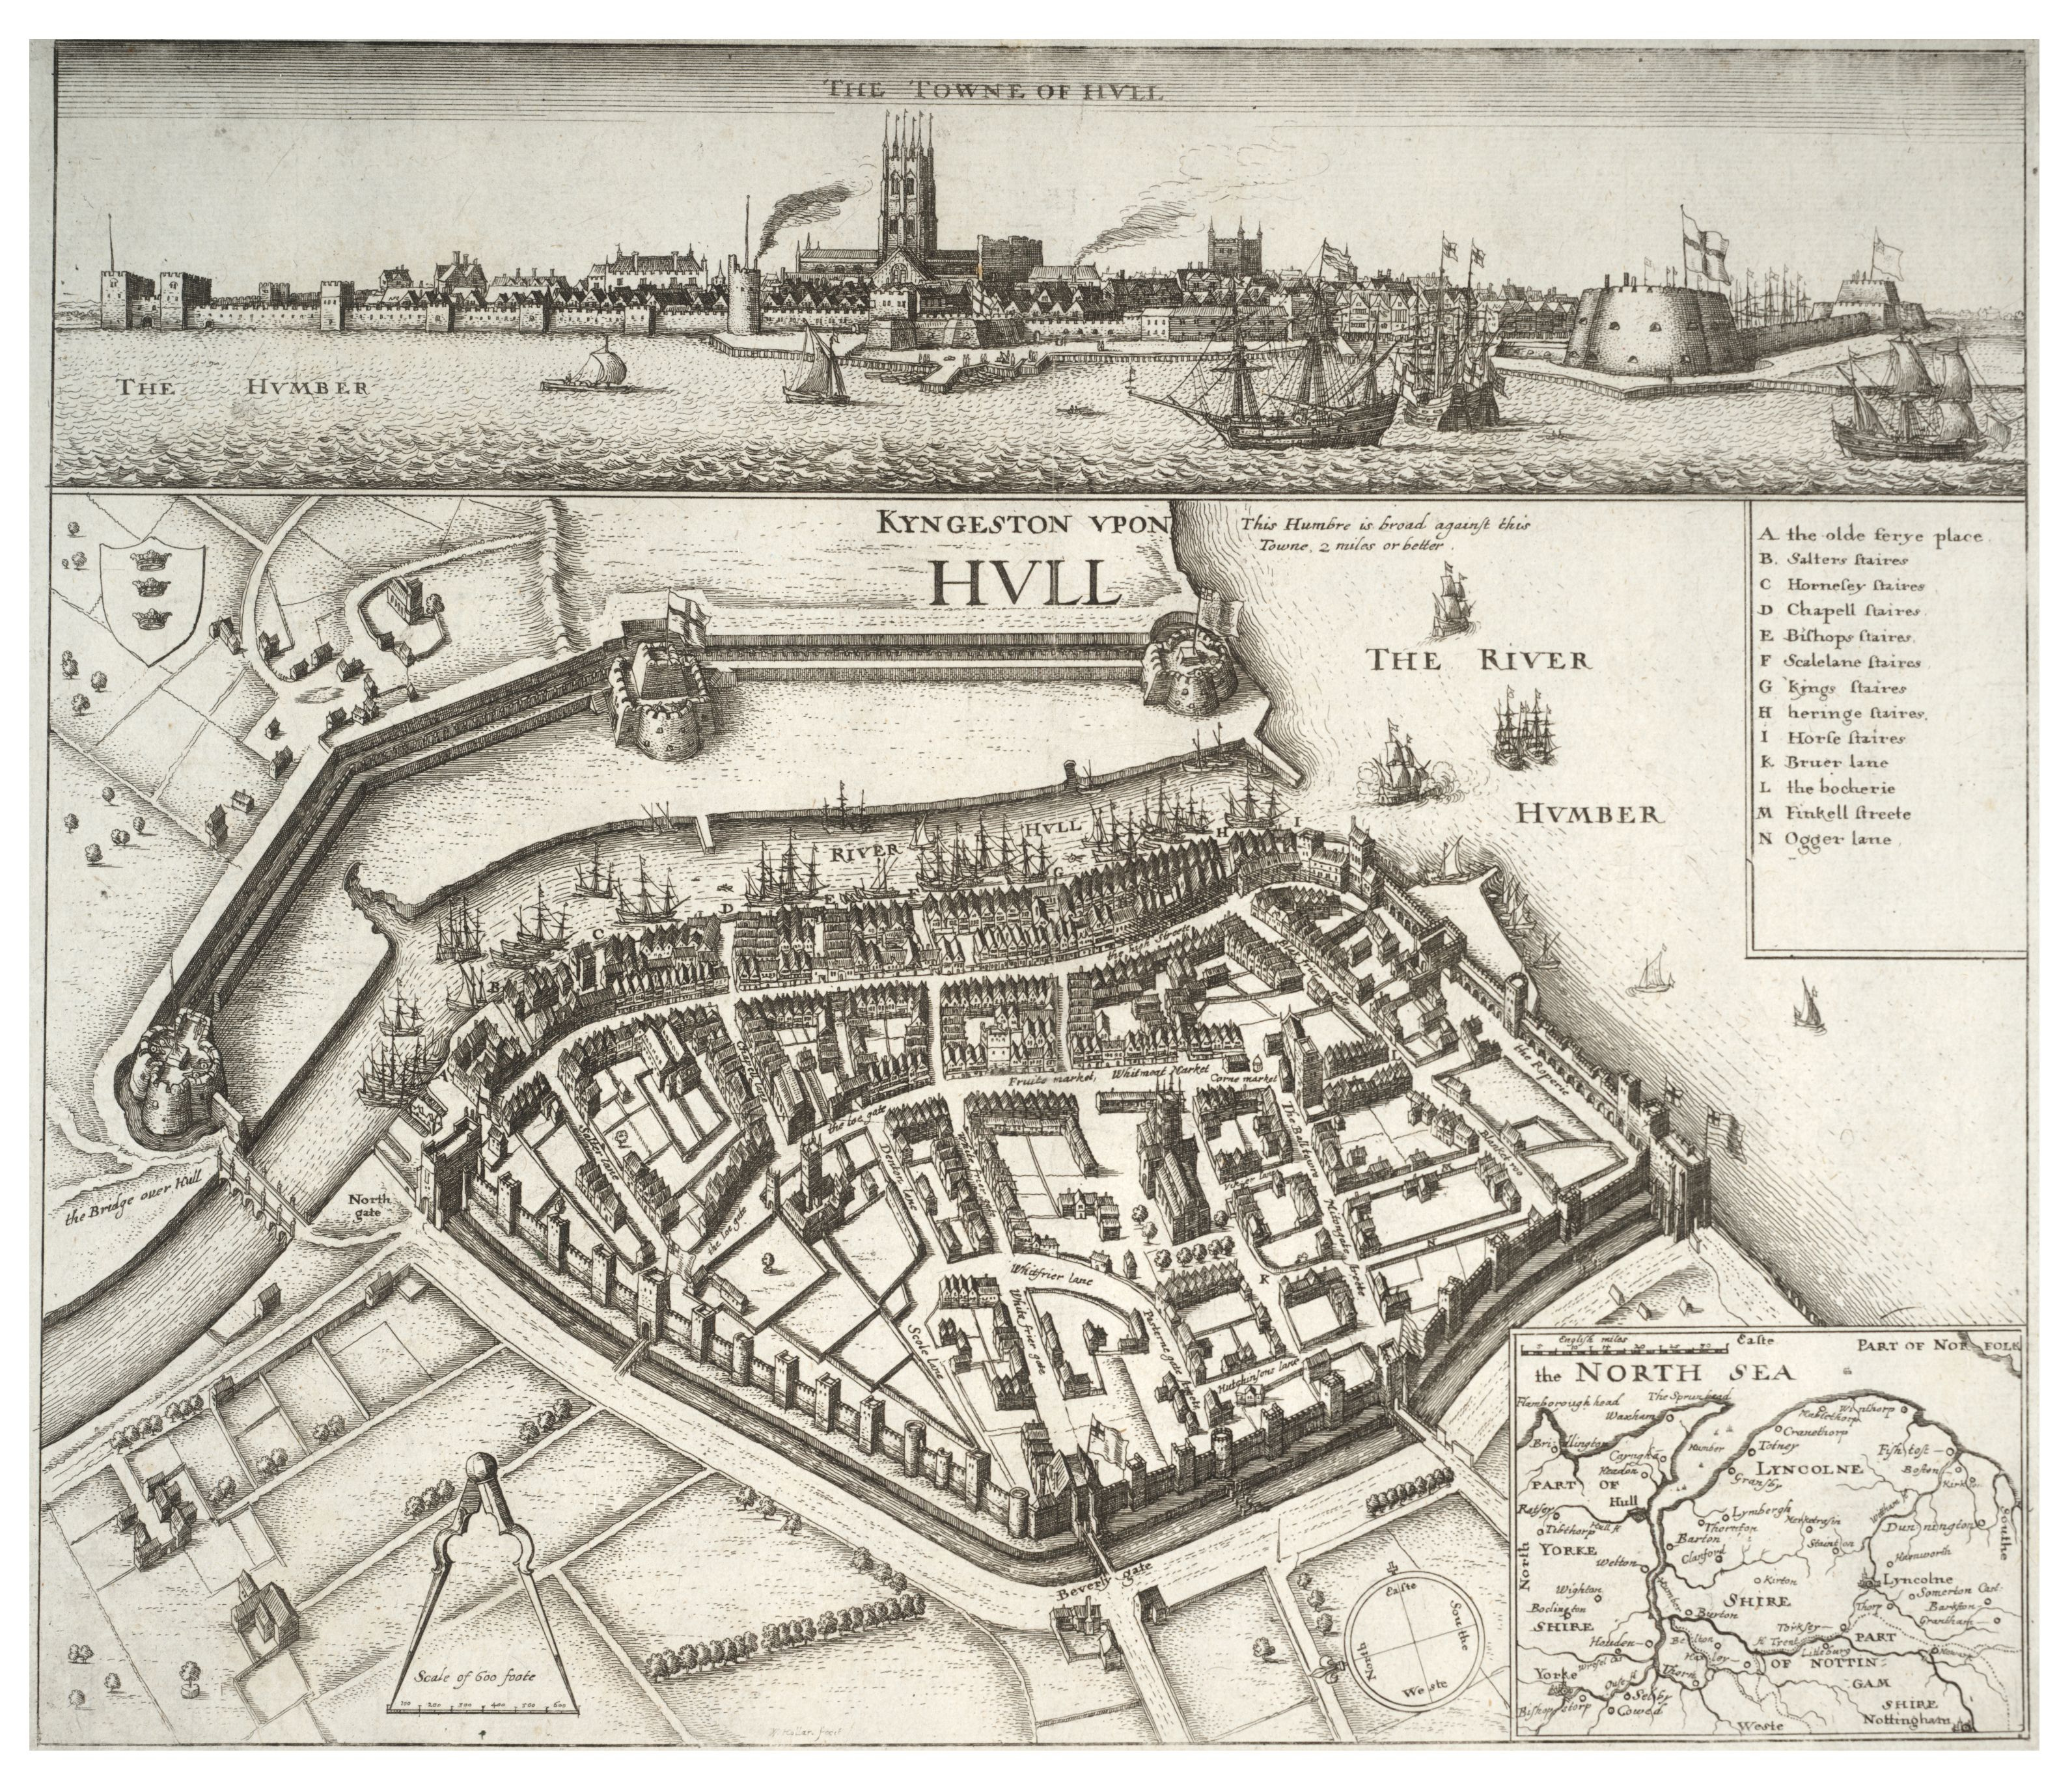 ingston upon Hull. W. Hollar fecit. (The Towne of Hull).